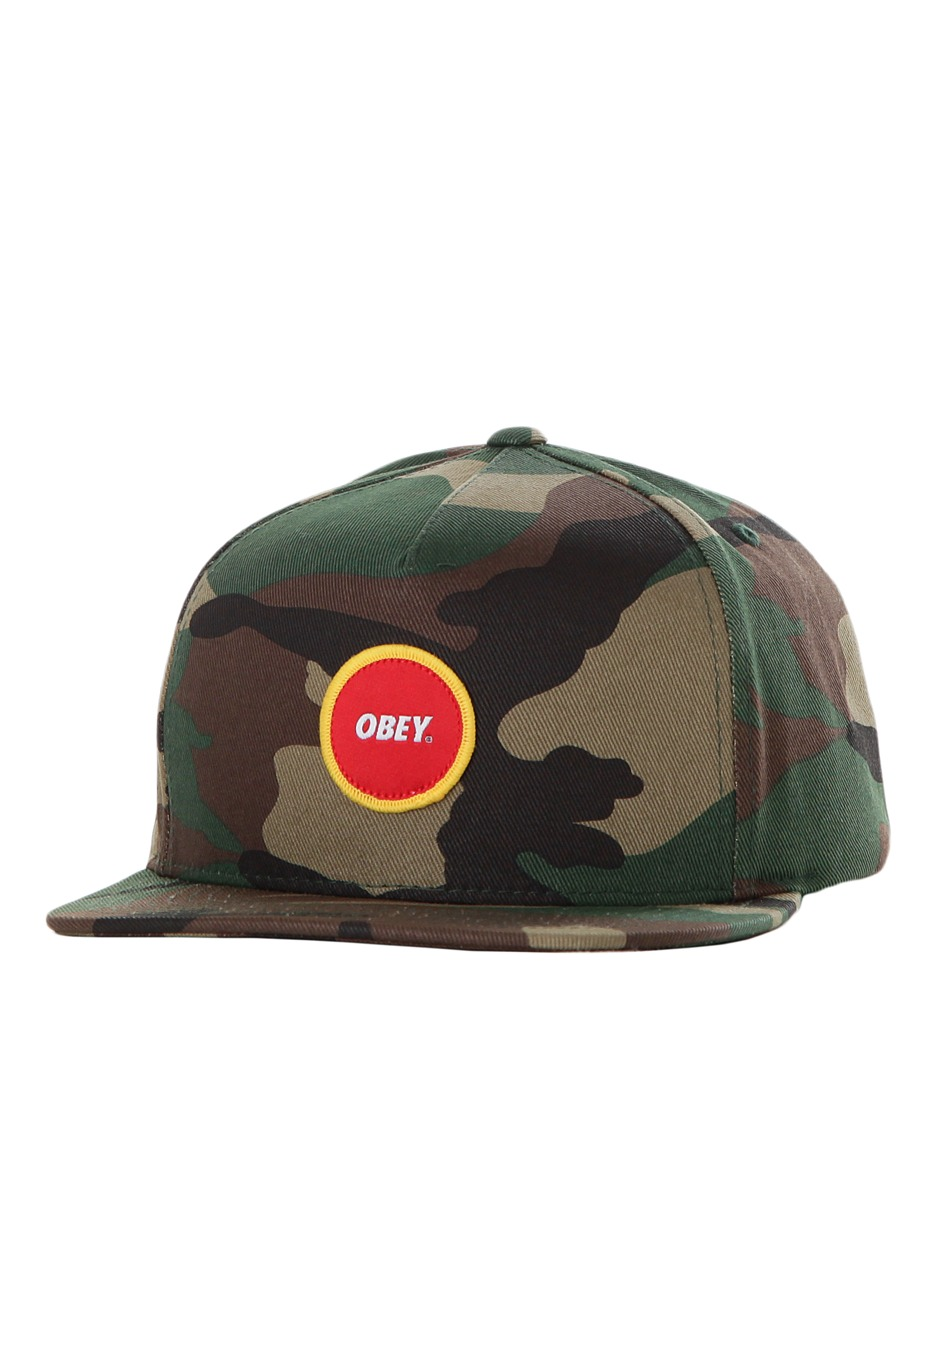 d8044e7afbe Obey - Circle Patch Field Camo Snapback - Cap - Streetwear Shop -  Impericon.com Worldwide